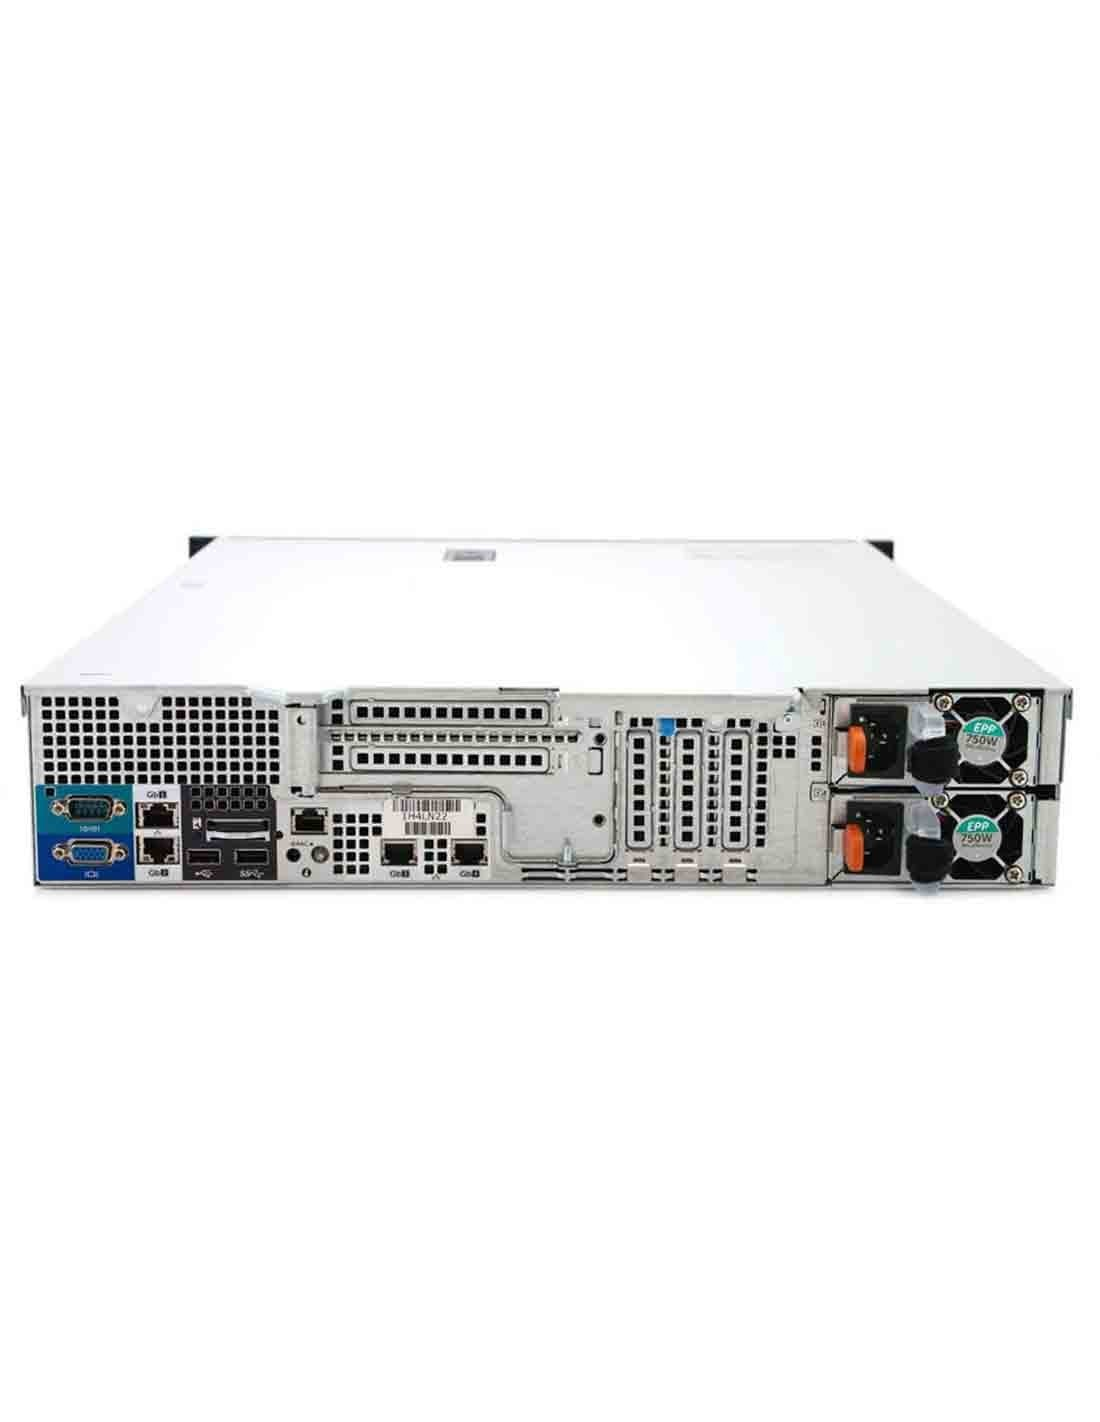 Dell PowerEdge R530 Rack Server Images and Photos